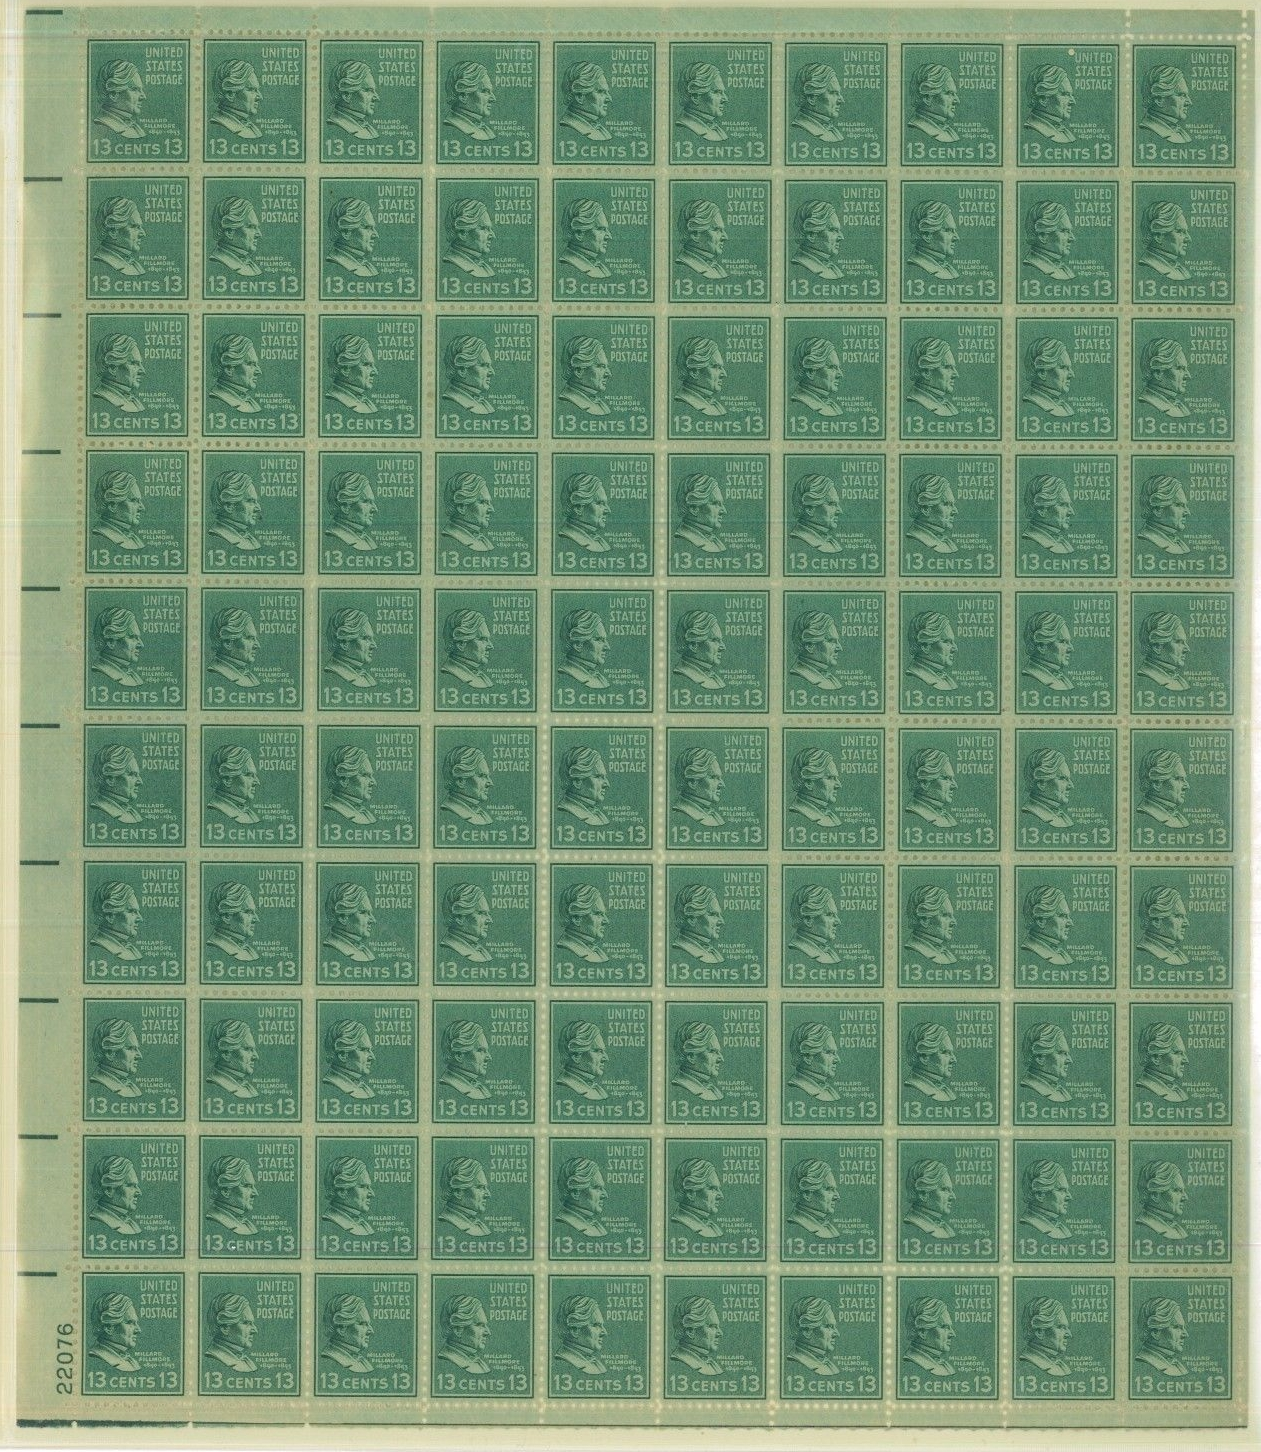 United States - Scott #818 (1938) full pane of 100